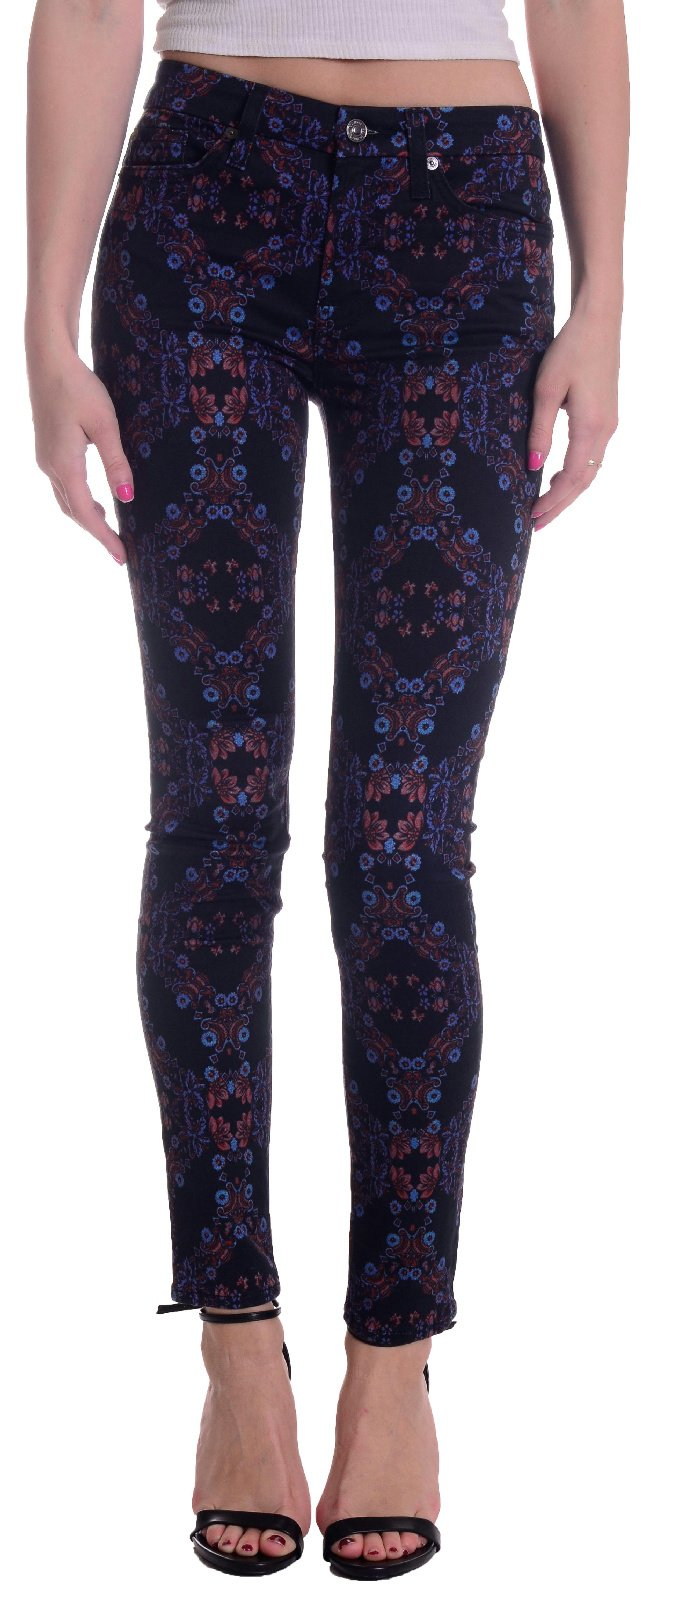 7 For All Mankind Women's The Mid Rise Skinny w/ Contour Waistband in Radiant Stained Glass Radiant Stained Glass Jeans by 7 For All Mankind